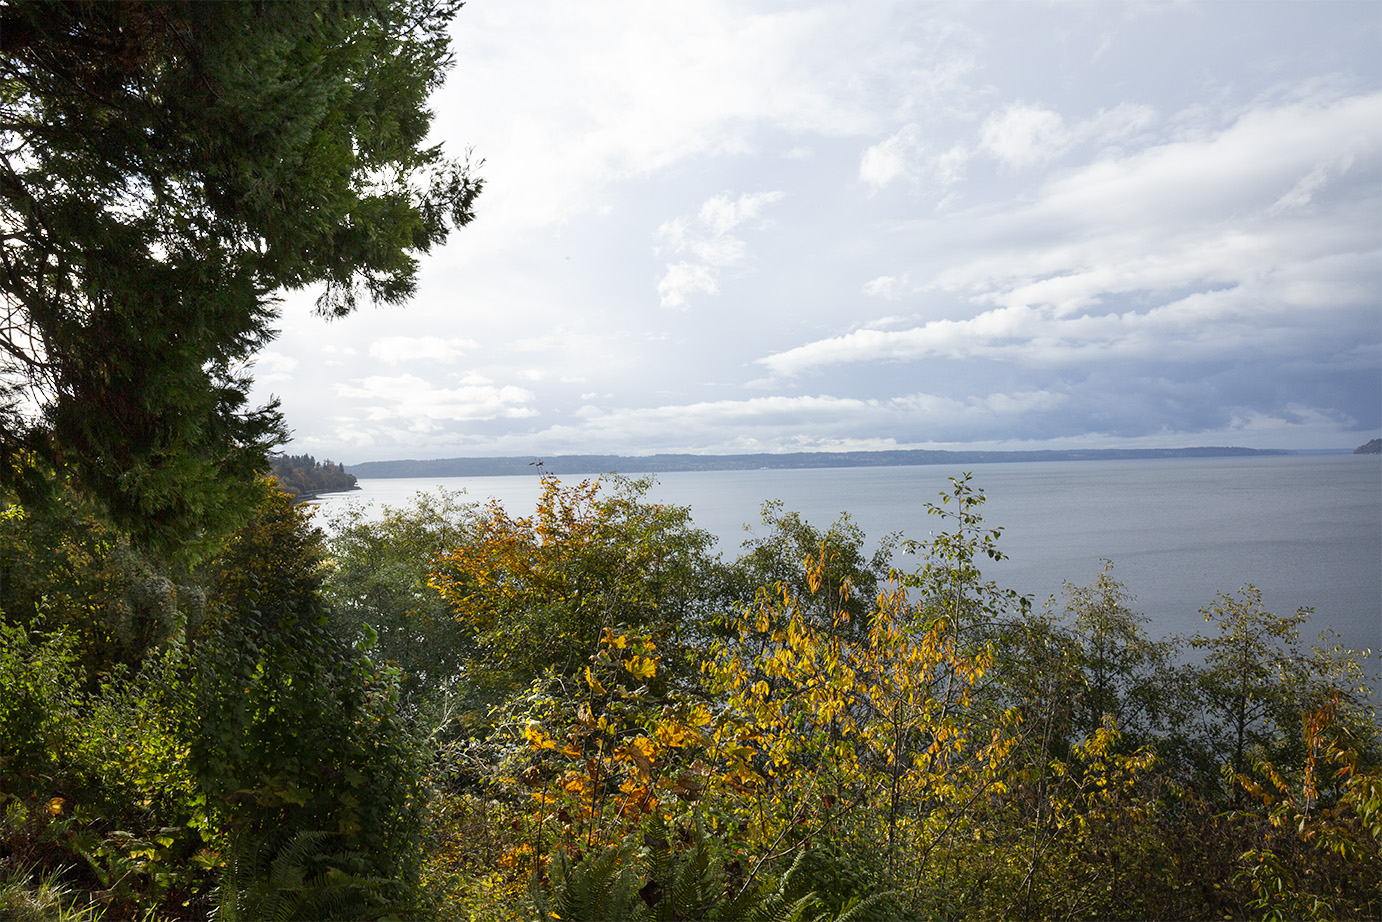 View of the Puget Sound from the middle level lookout of Howarth Park.